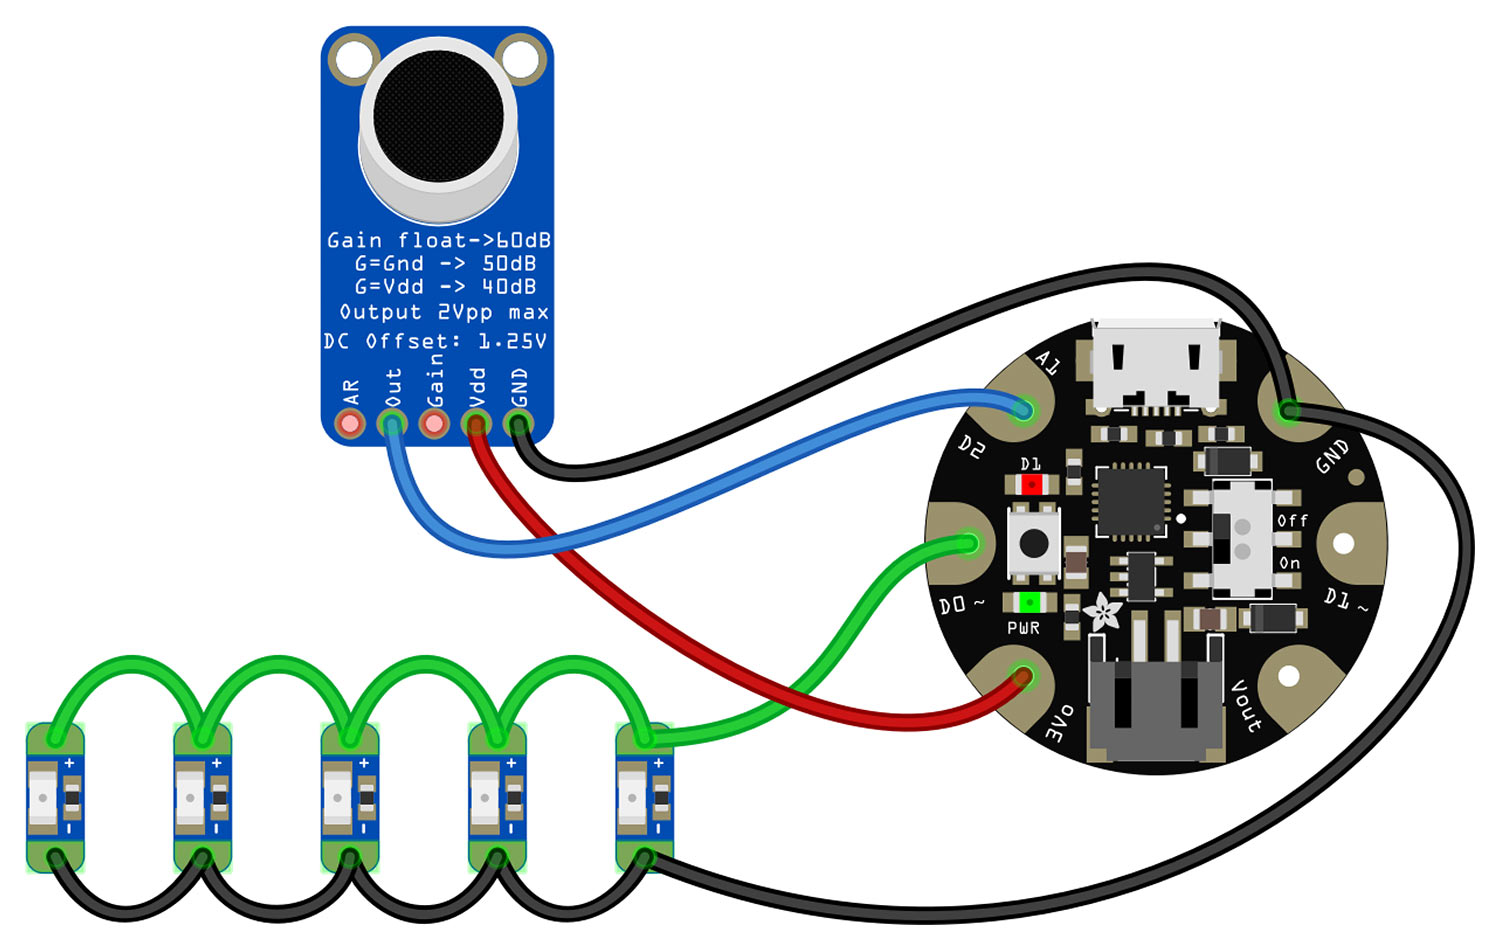 leds_LED-sequin-mask-circuit.jpg